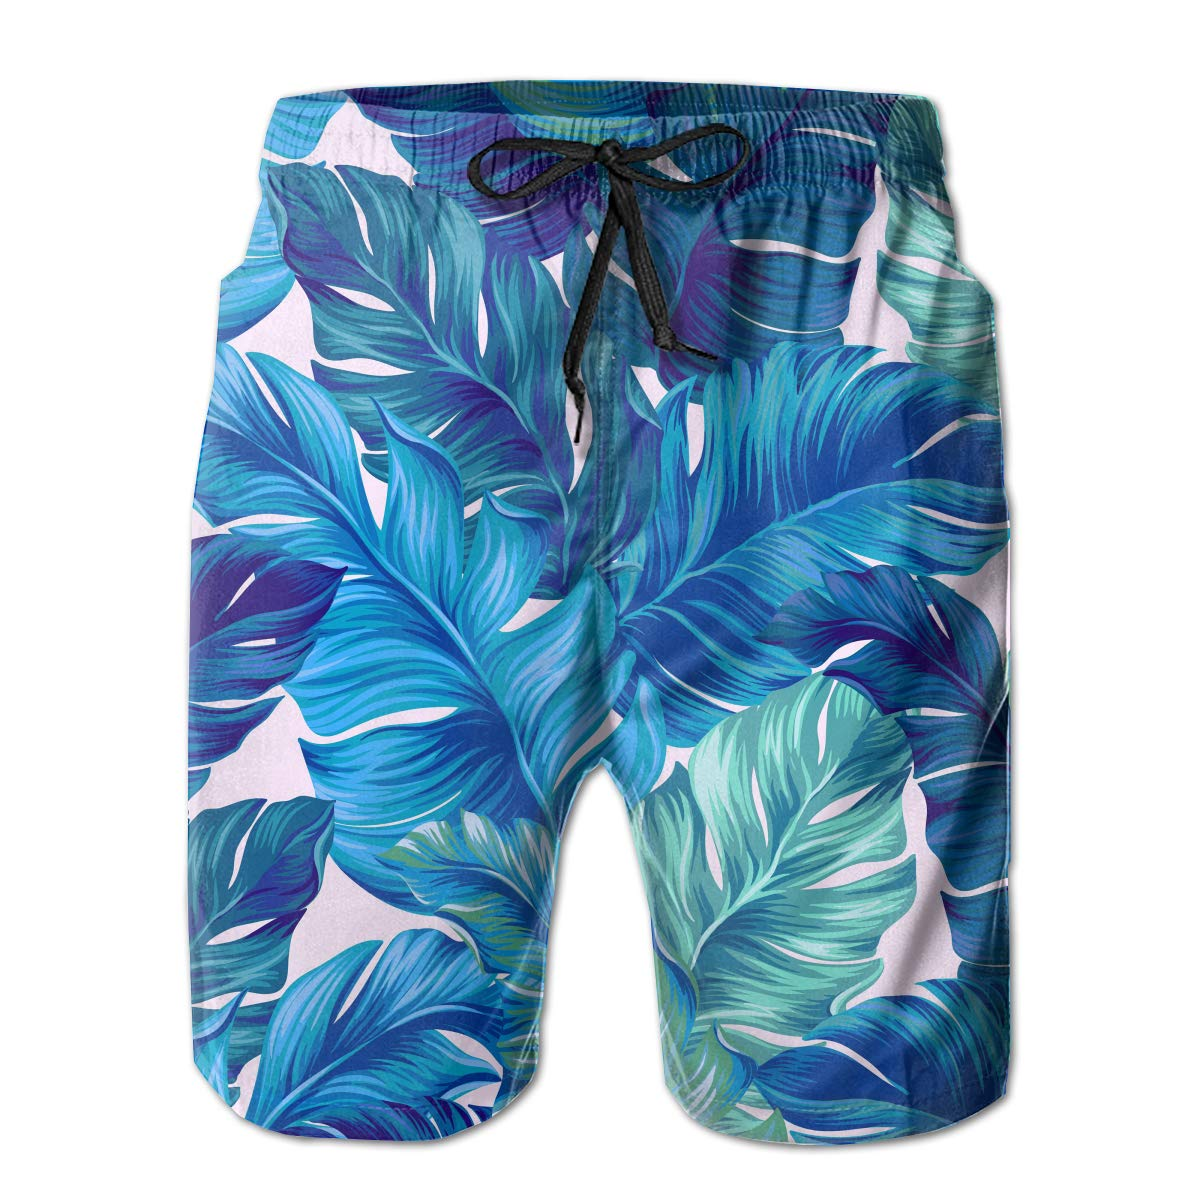 0afb73e998 Amazon.com: NICOKEE Cool Swim Trunks for Men Blue Tropical Leaves Banana  Hawaii Nature Palm Blue Summer Quick Dry Beach/Board Shorts: Clothing